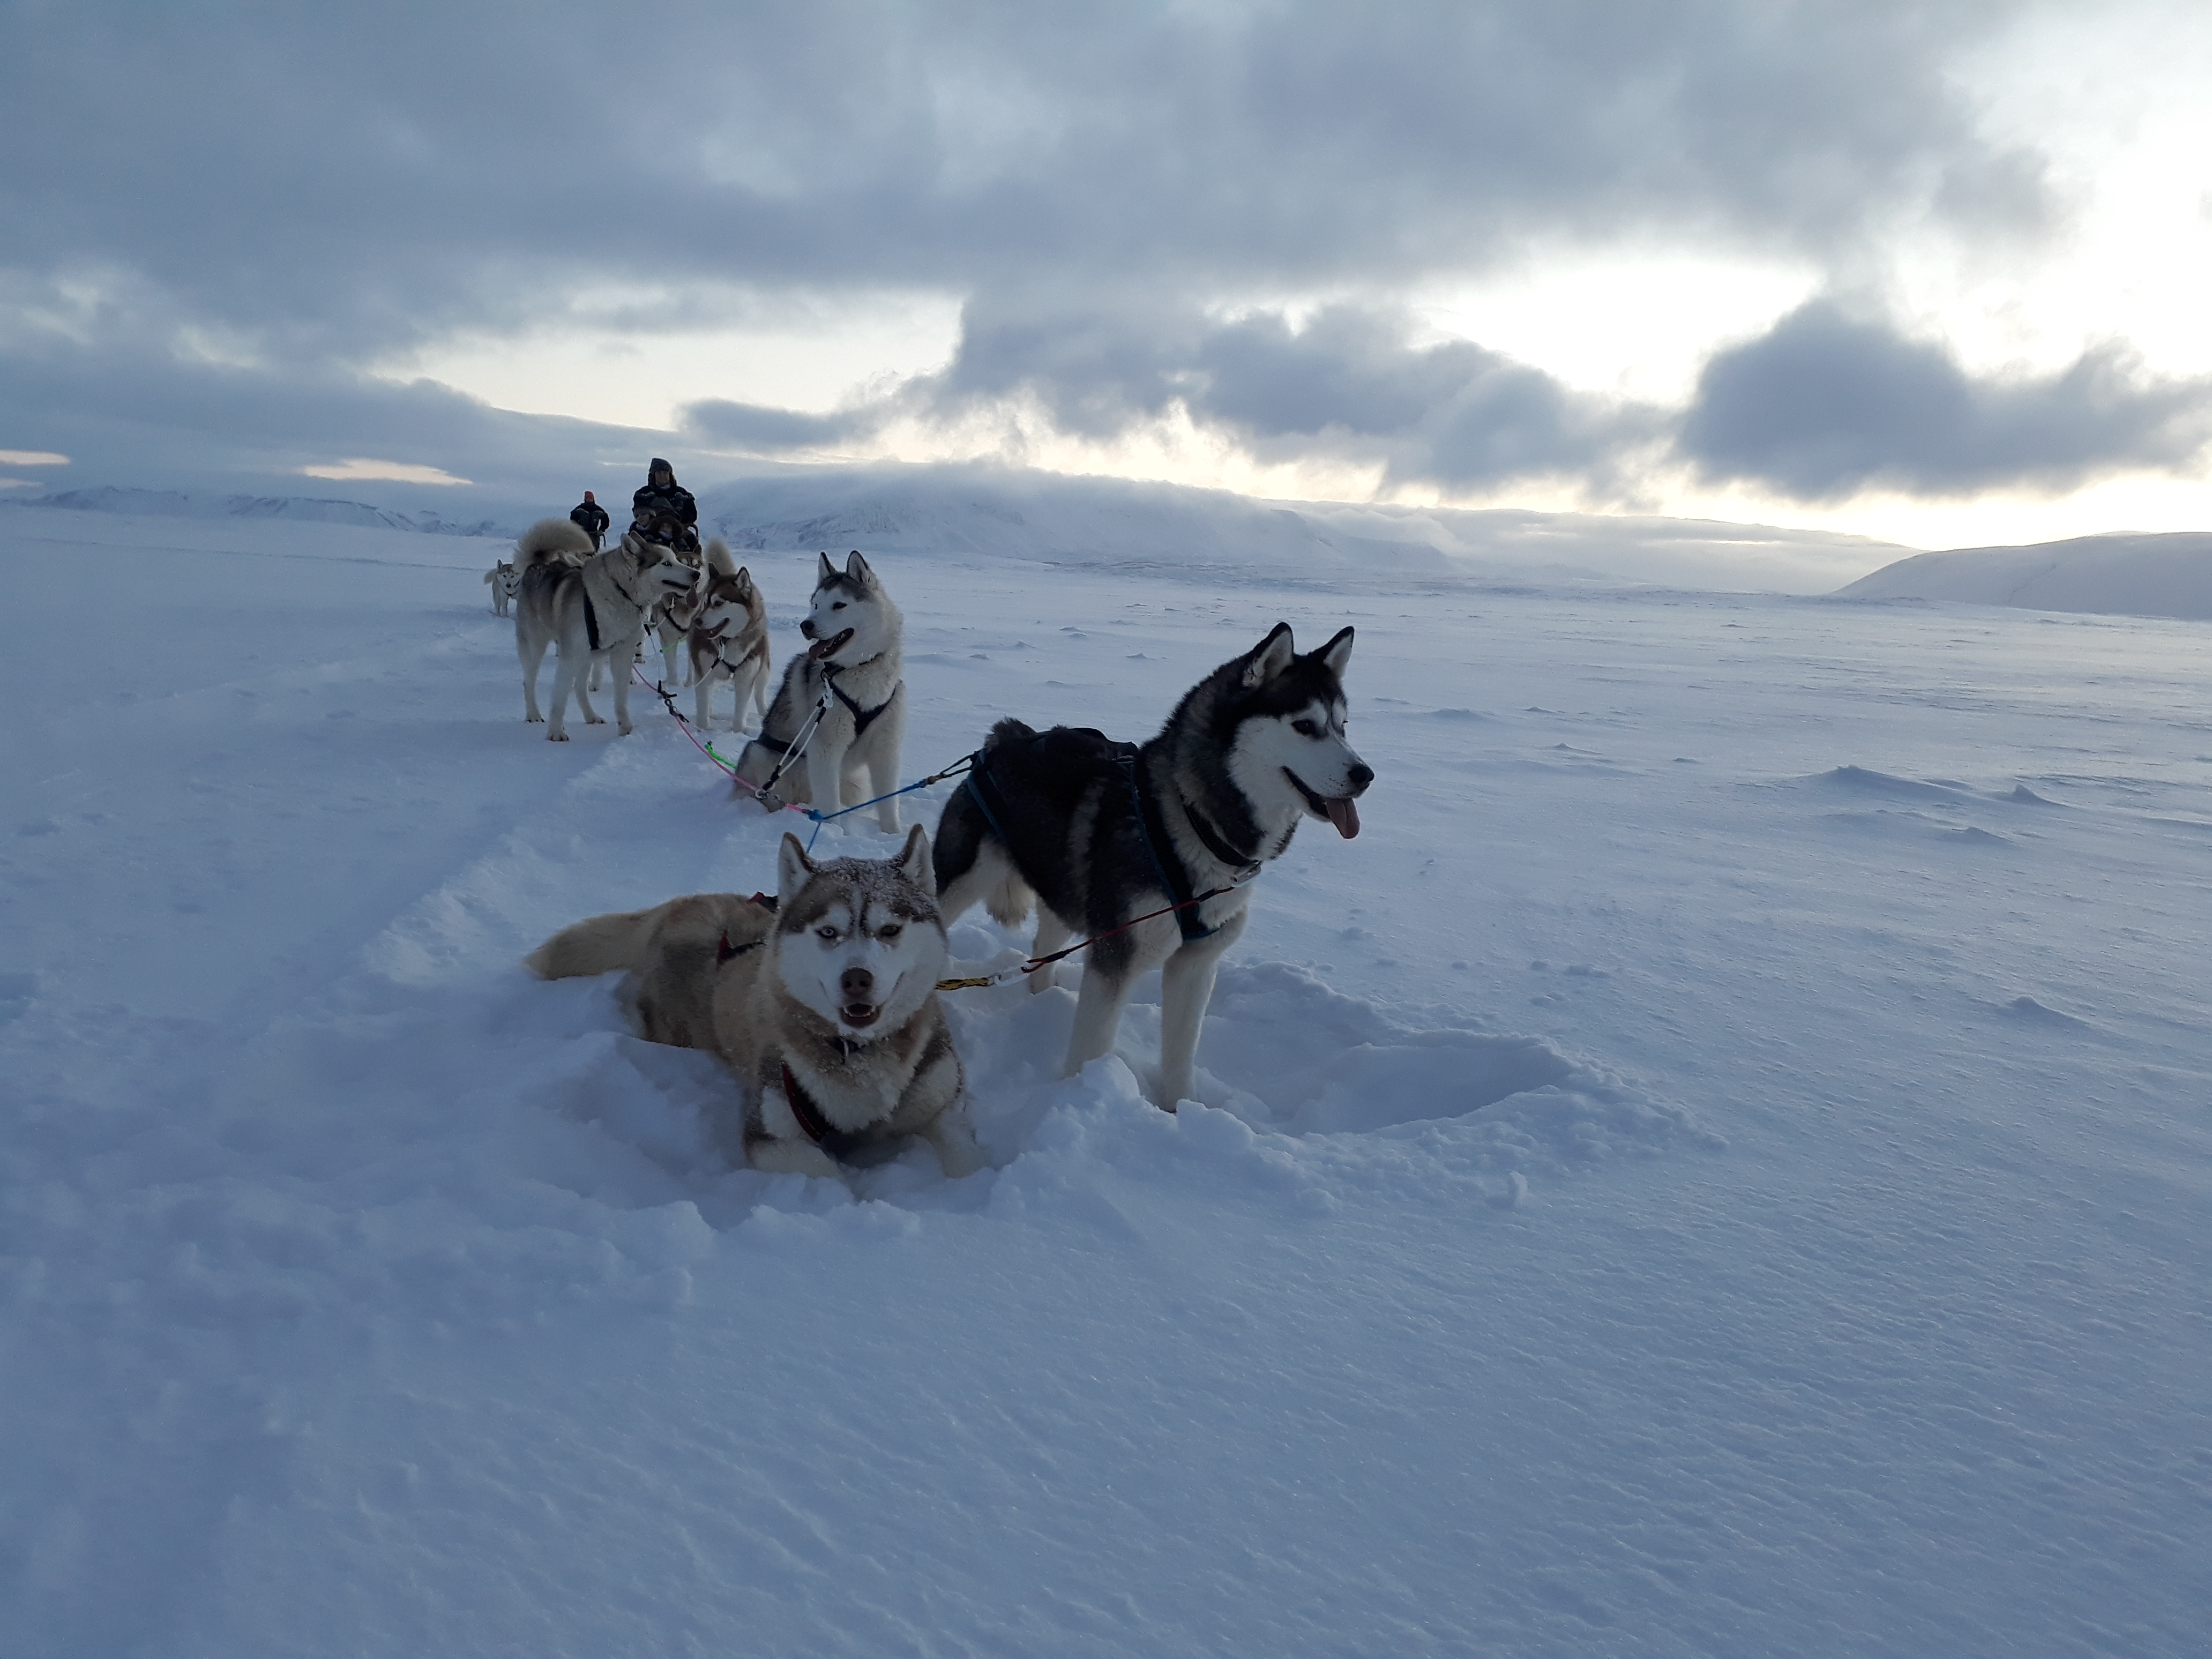 Siberian Huskies resting in the snow.